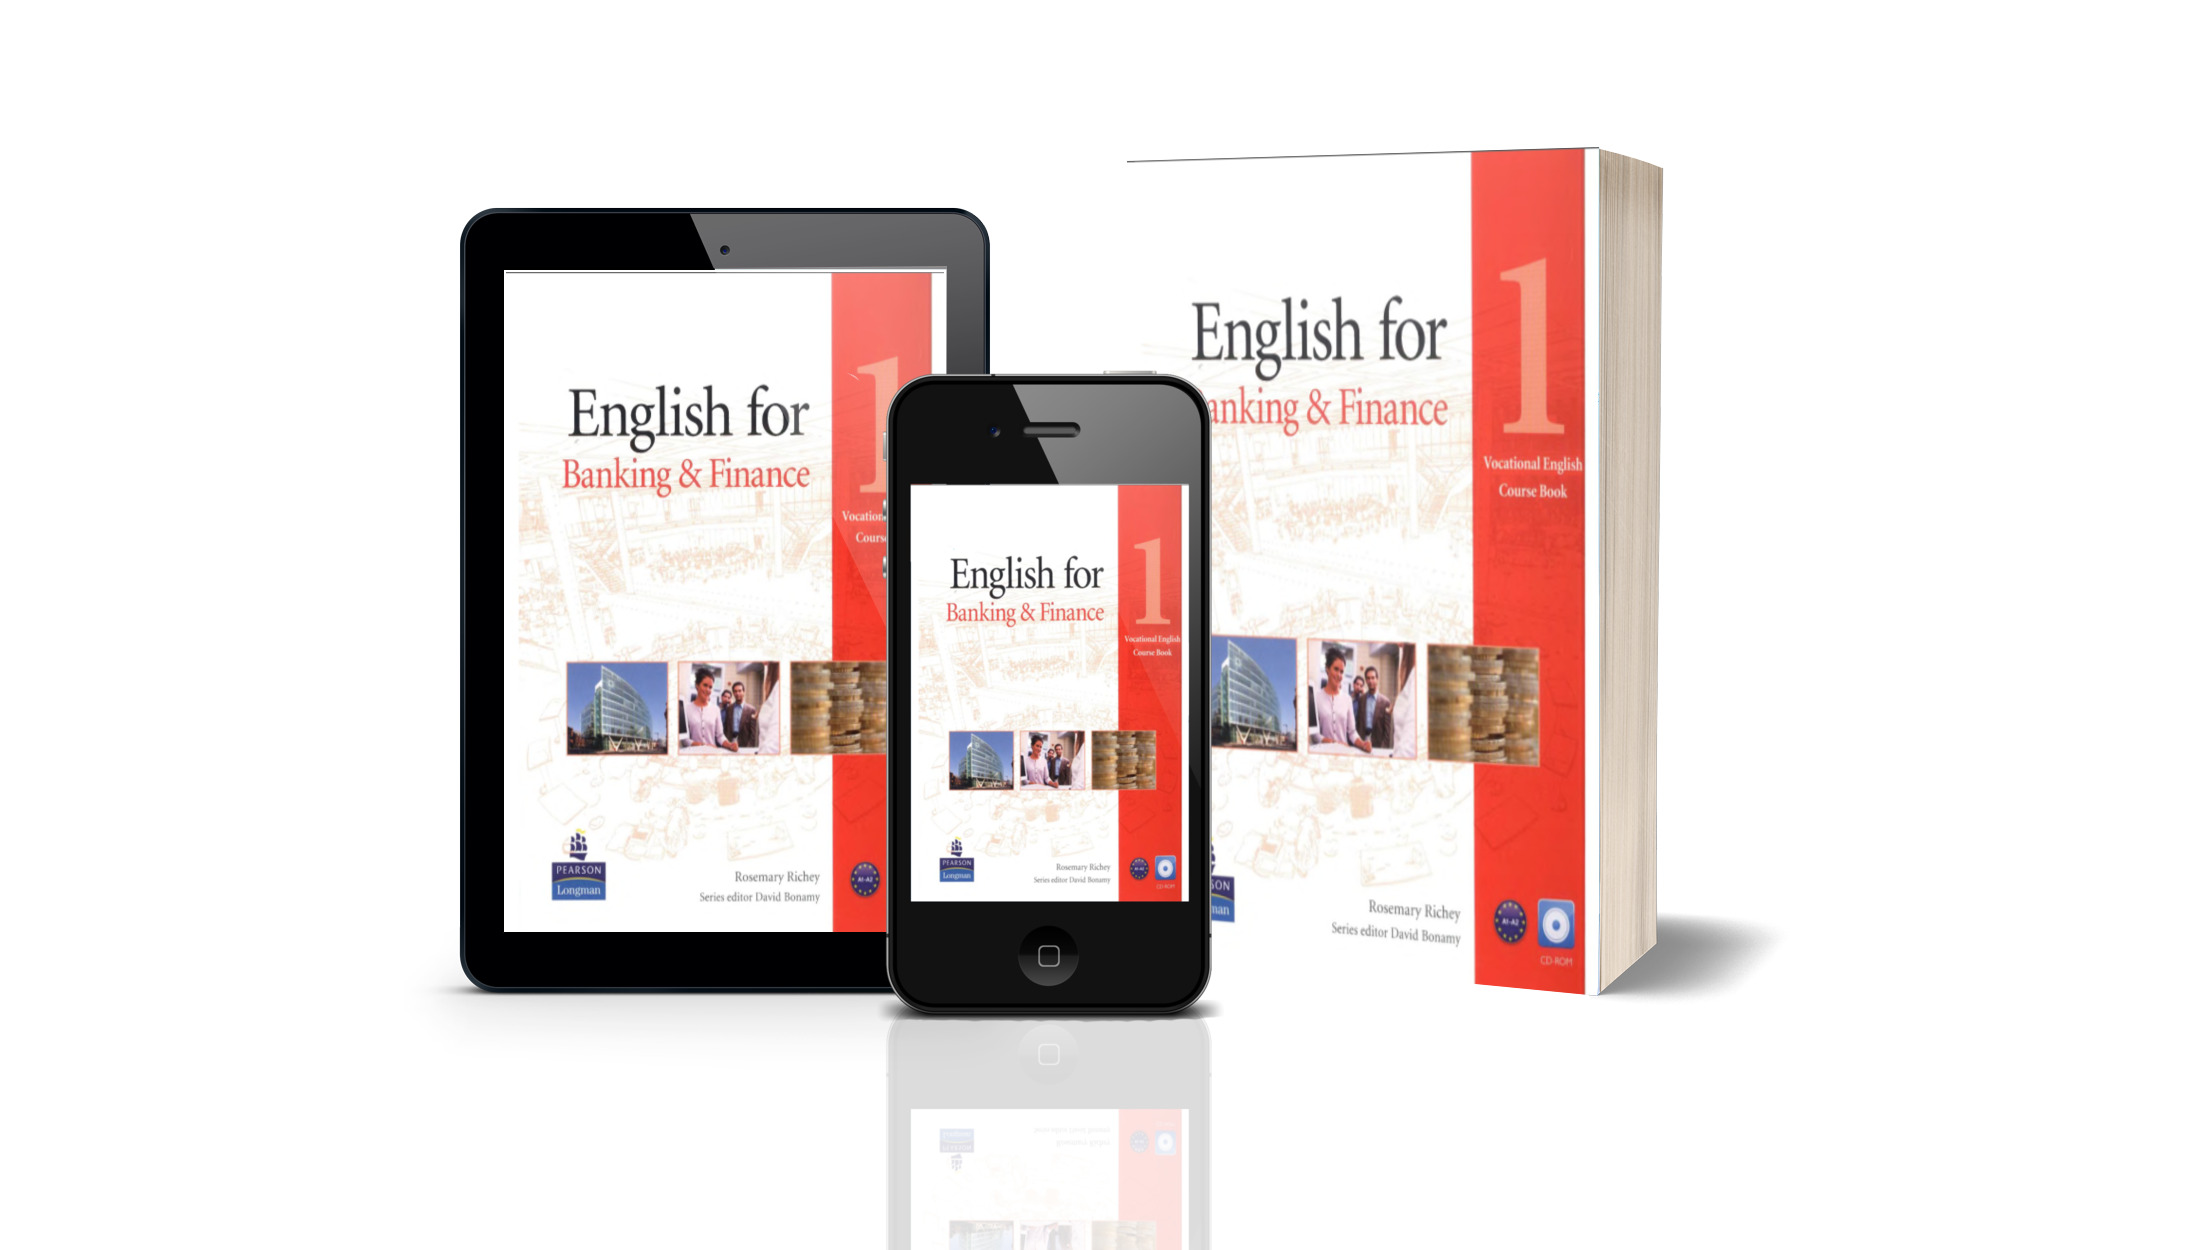 BOOK: ENGLISH FOR BANKING & FINANCE